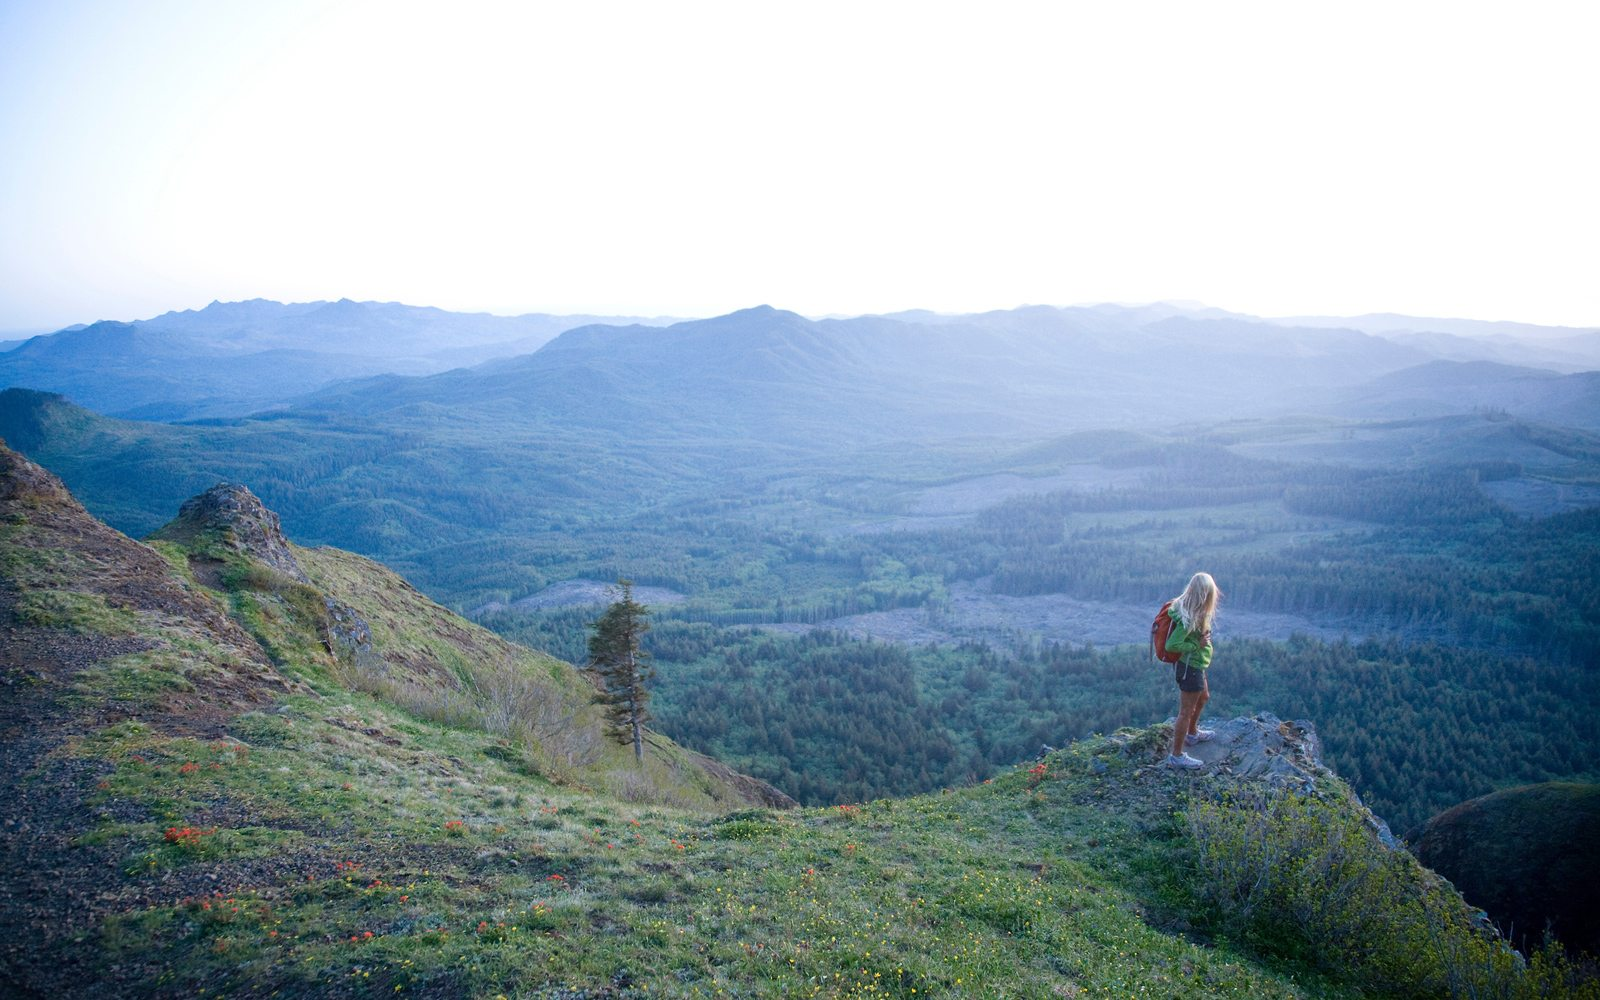 Hiking Saddle Mountain is one of our four favorite hikes around Seaside.